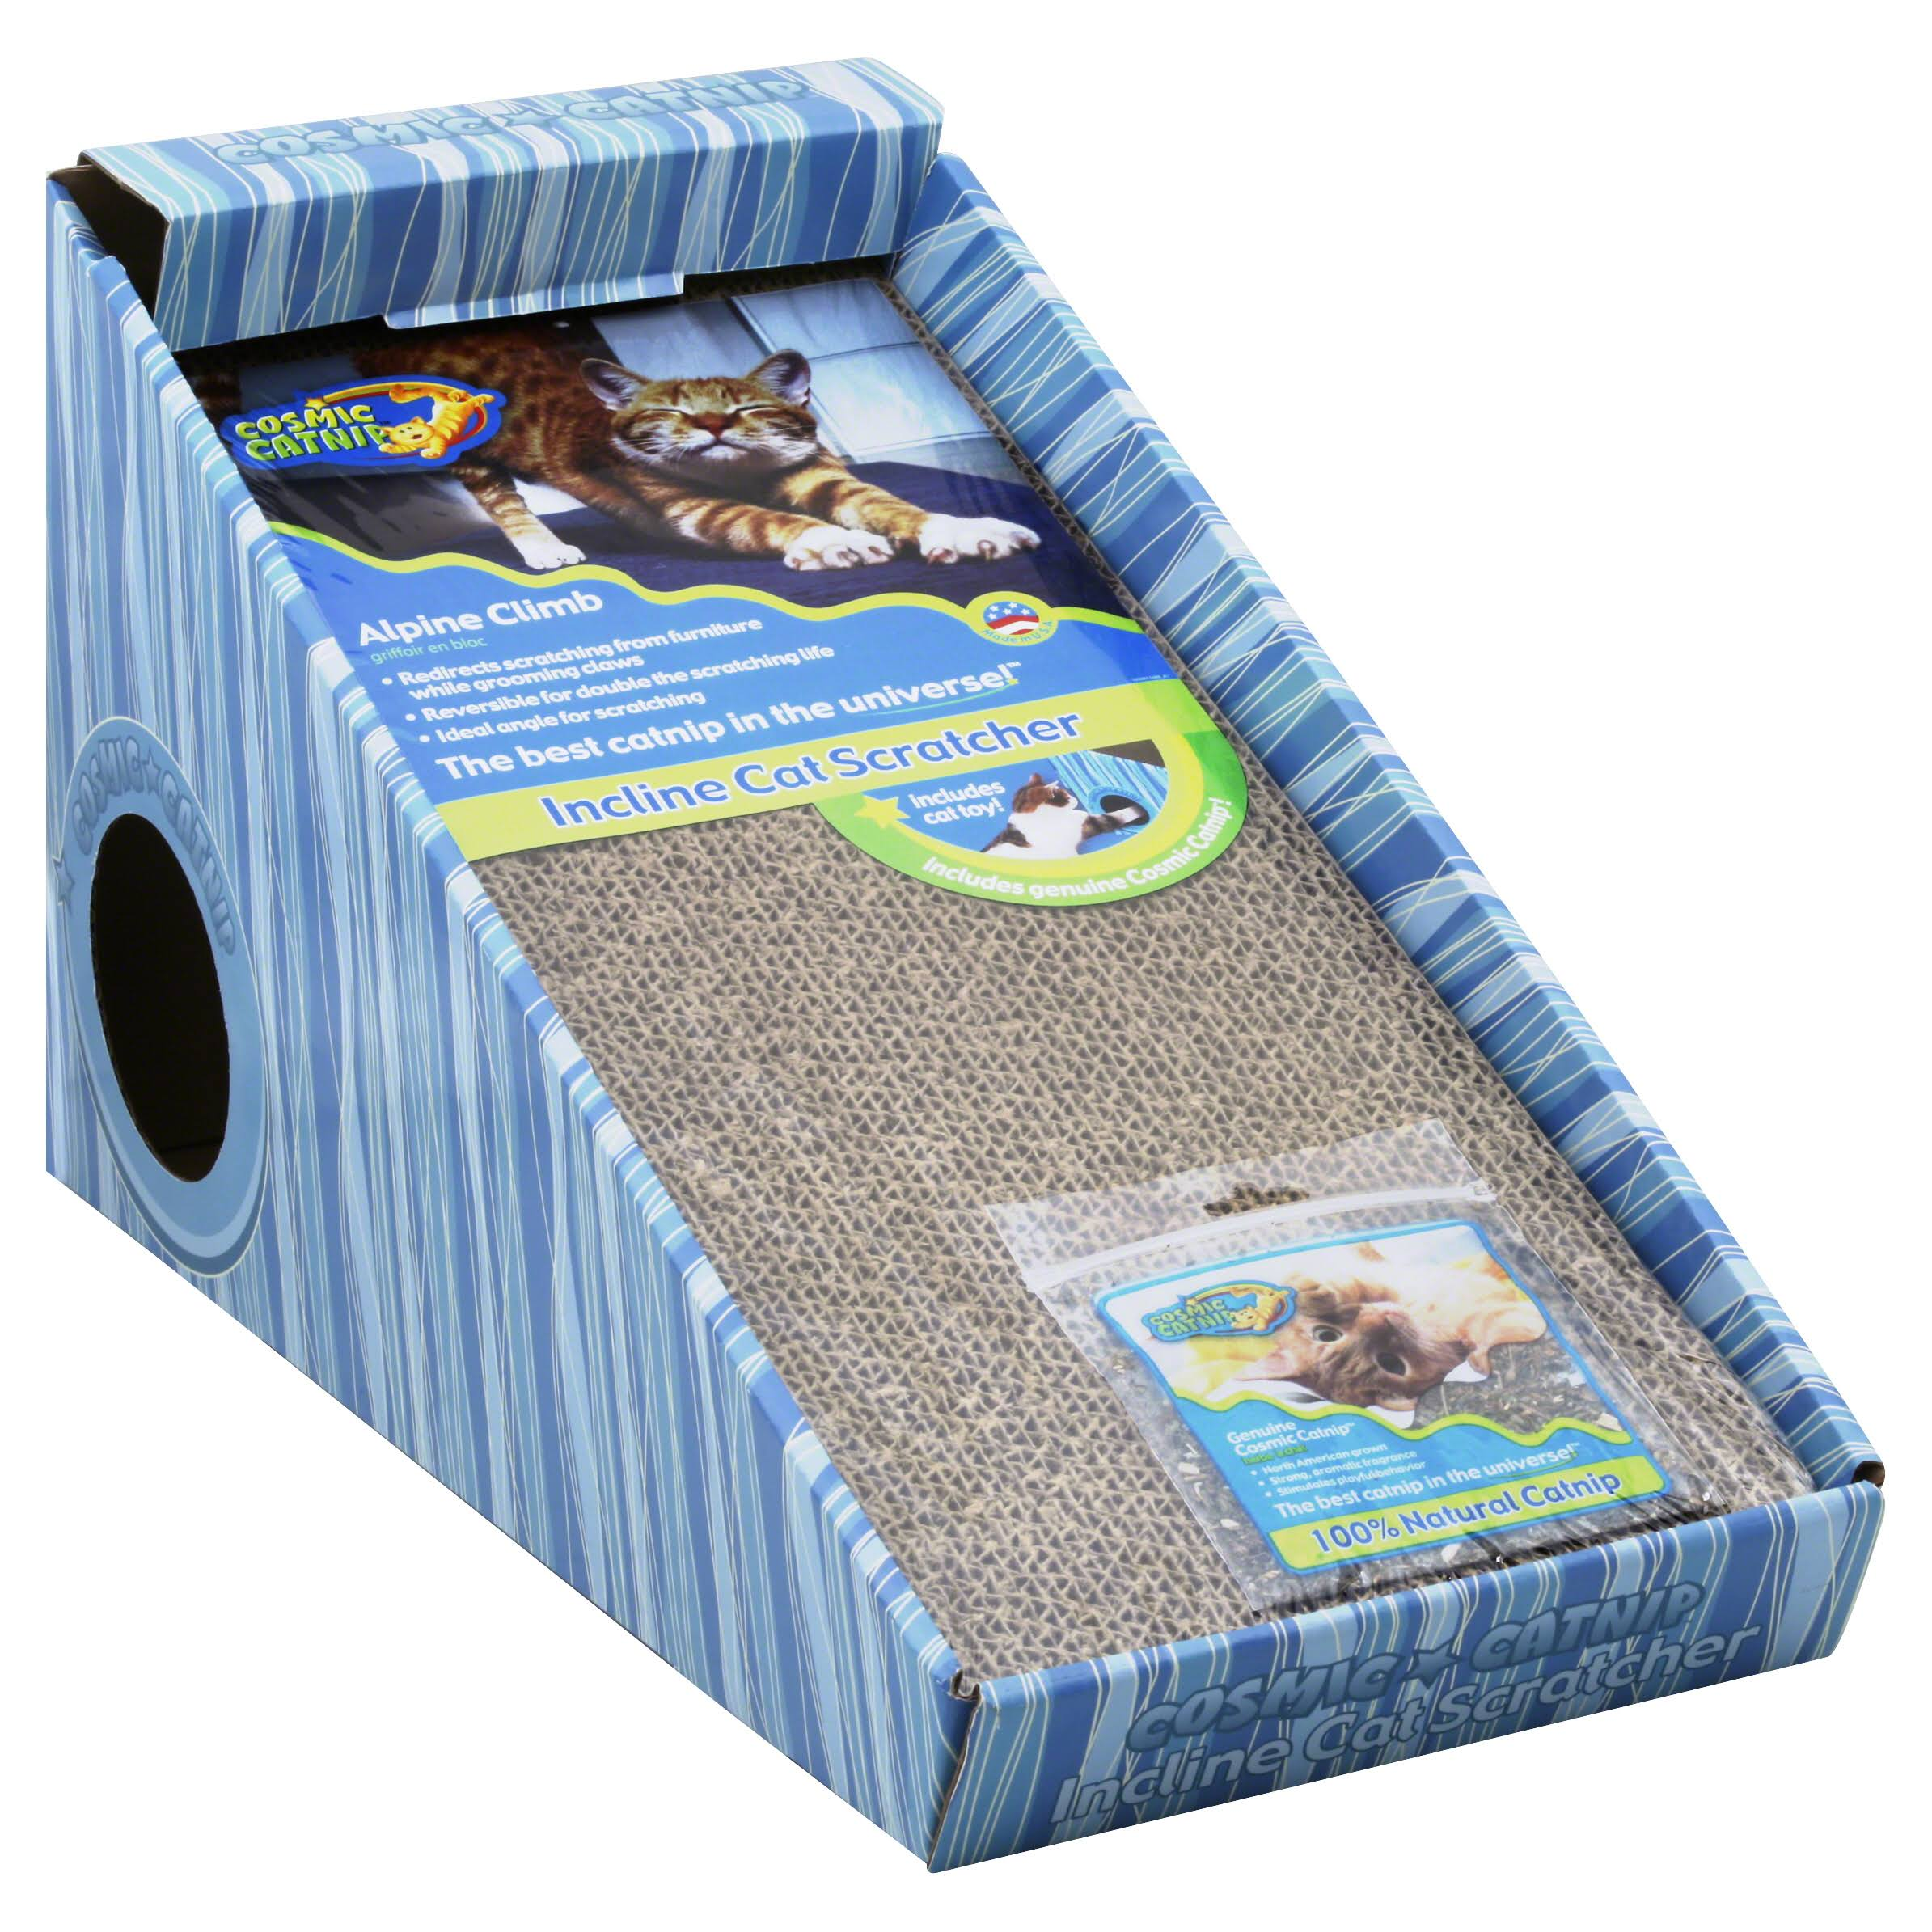 Cosmic Catnip Alpine Cat Scratcher